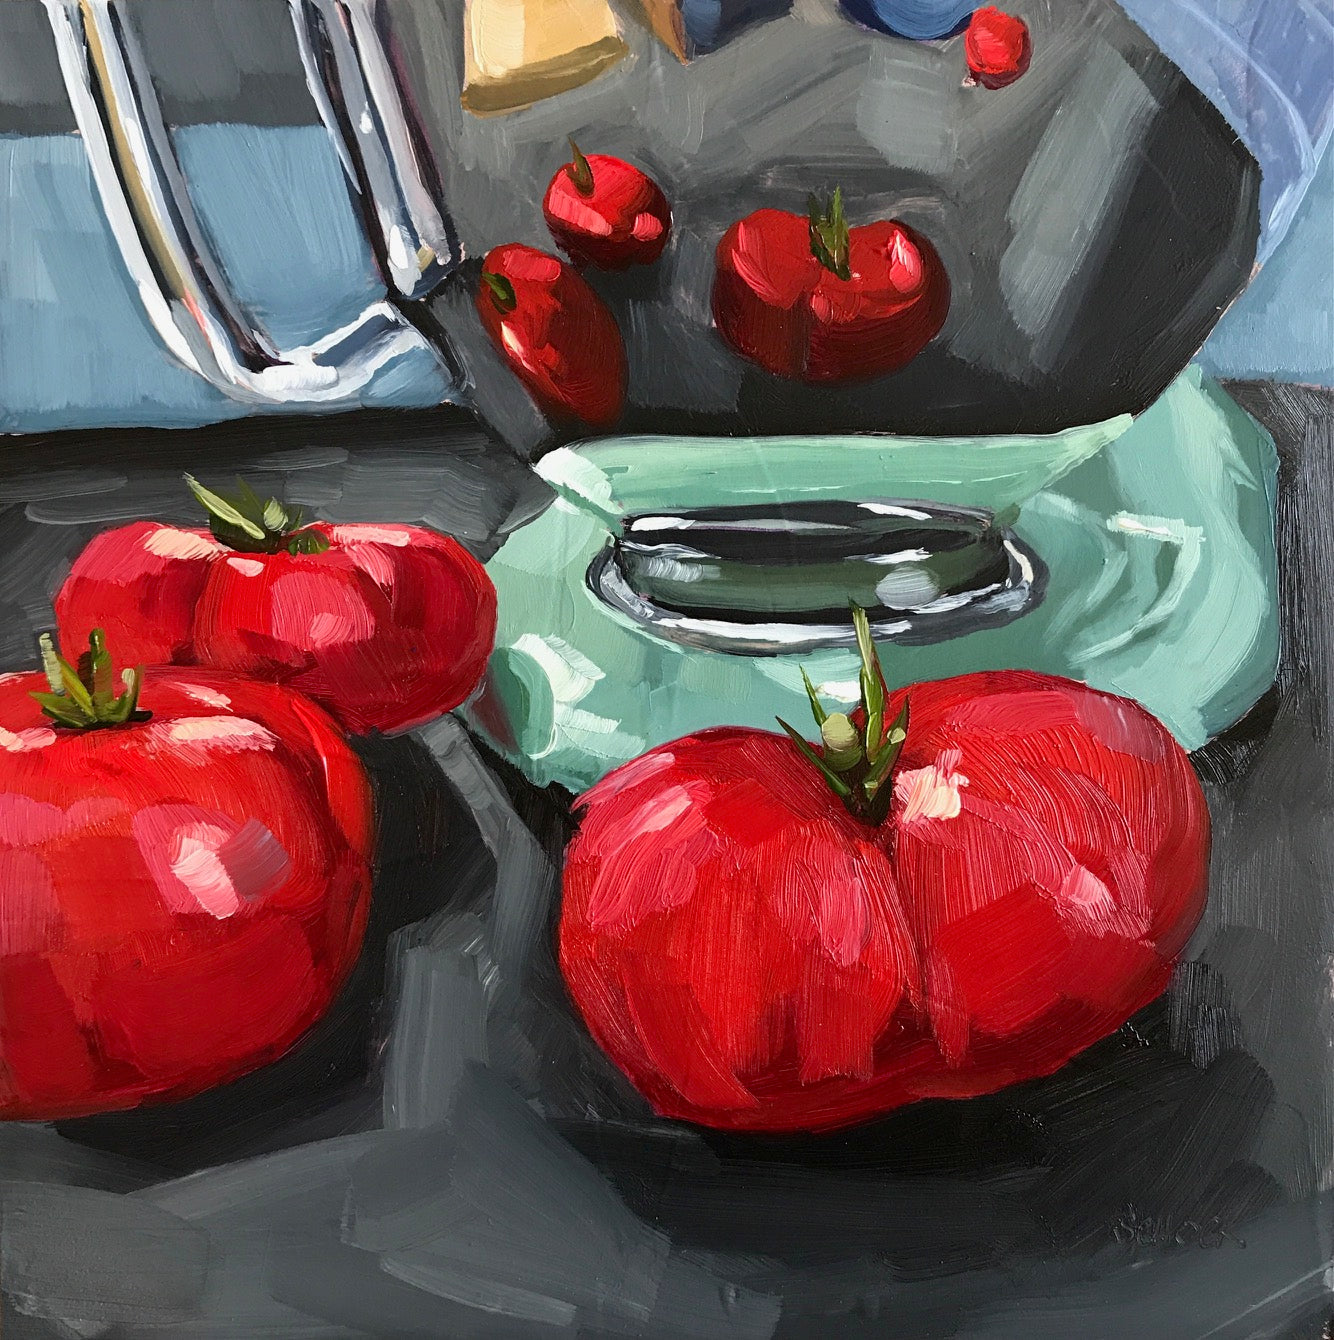 Kitchenaid and Tomatoes - 6x6